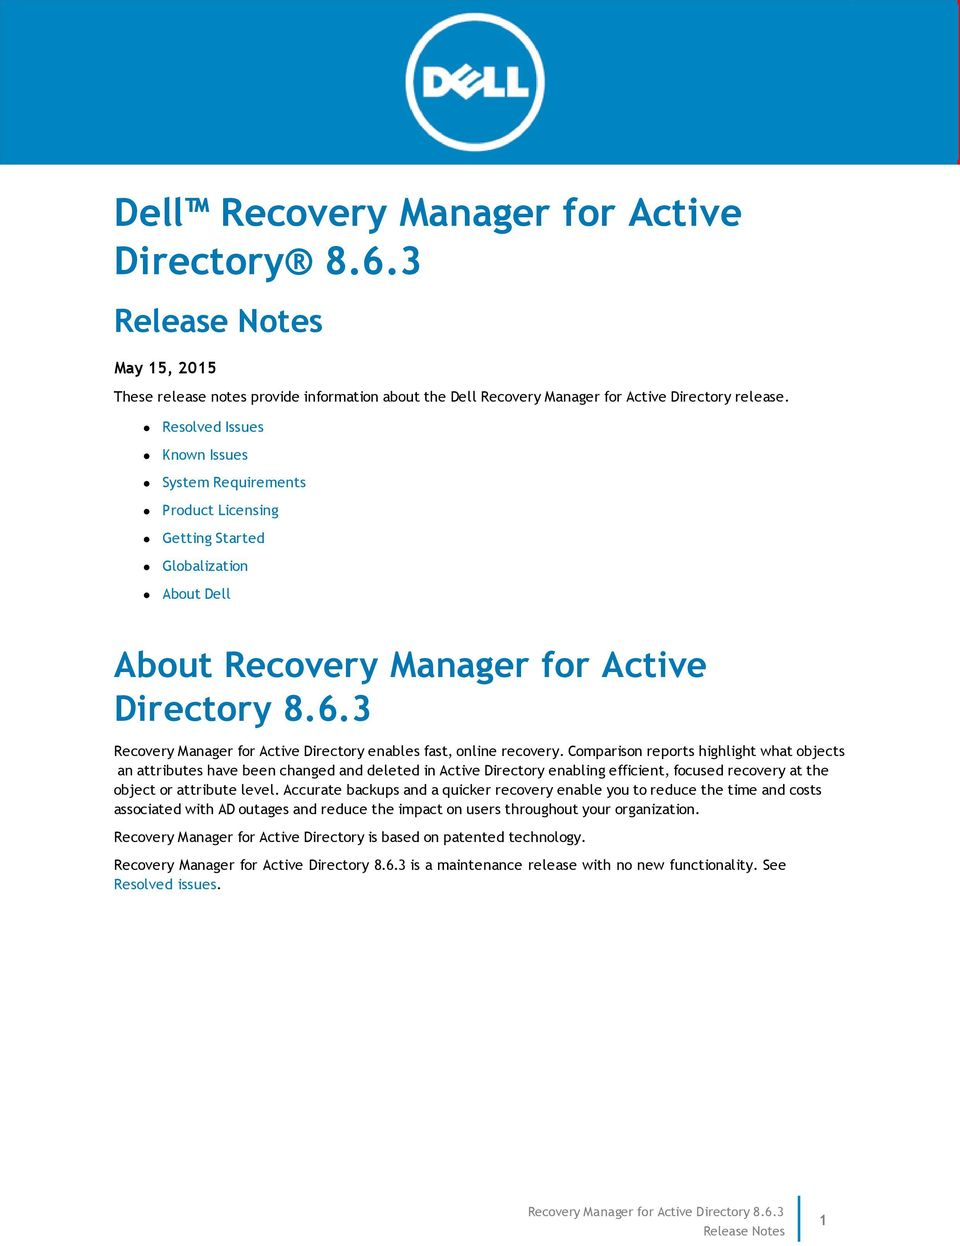 3 Recovery Manager for Active Directory enables fast, online recovery.